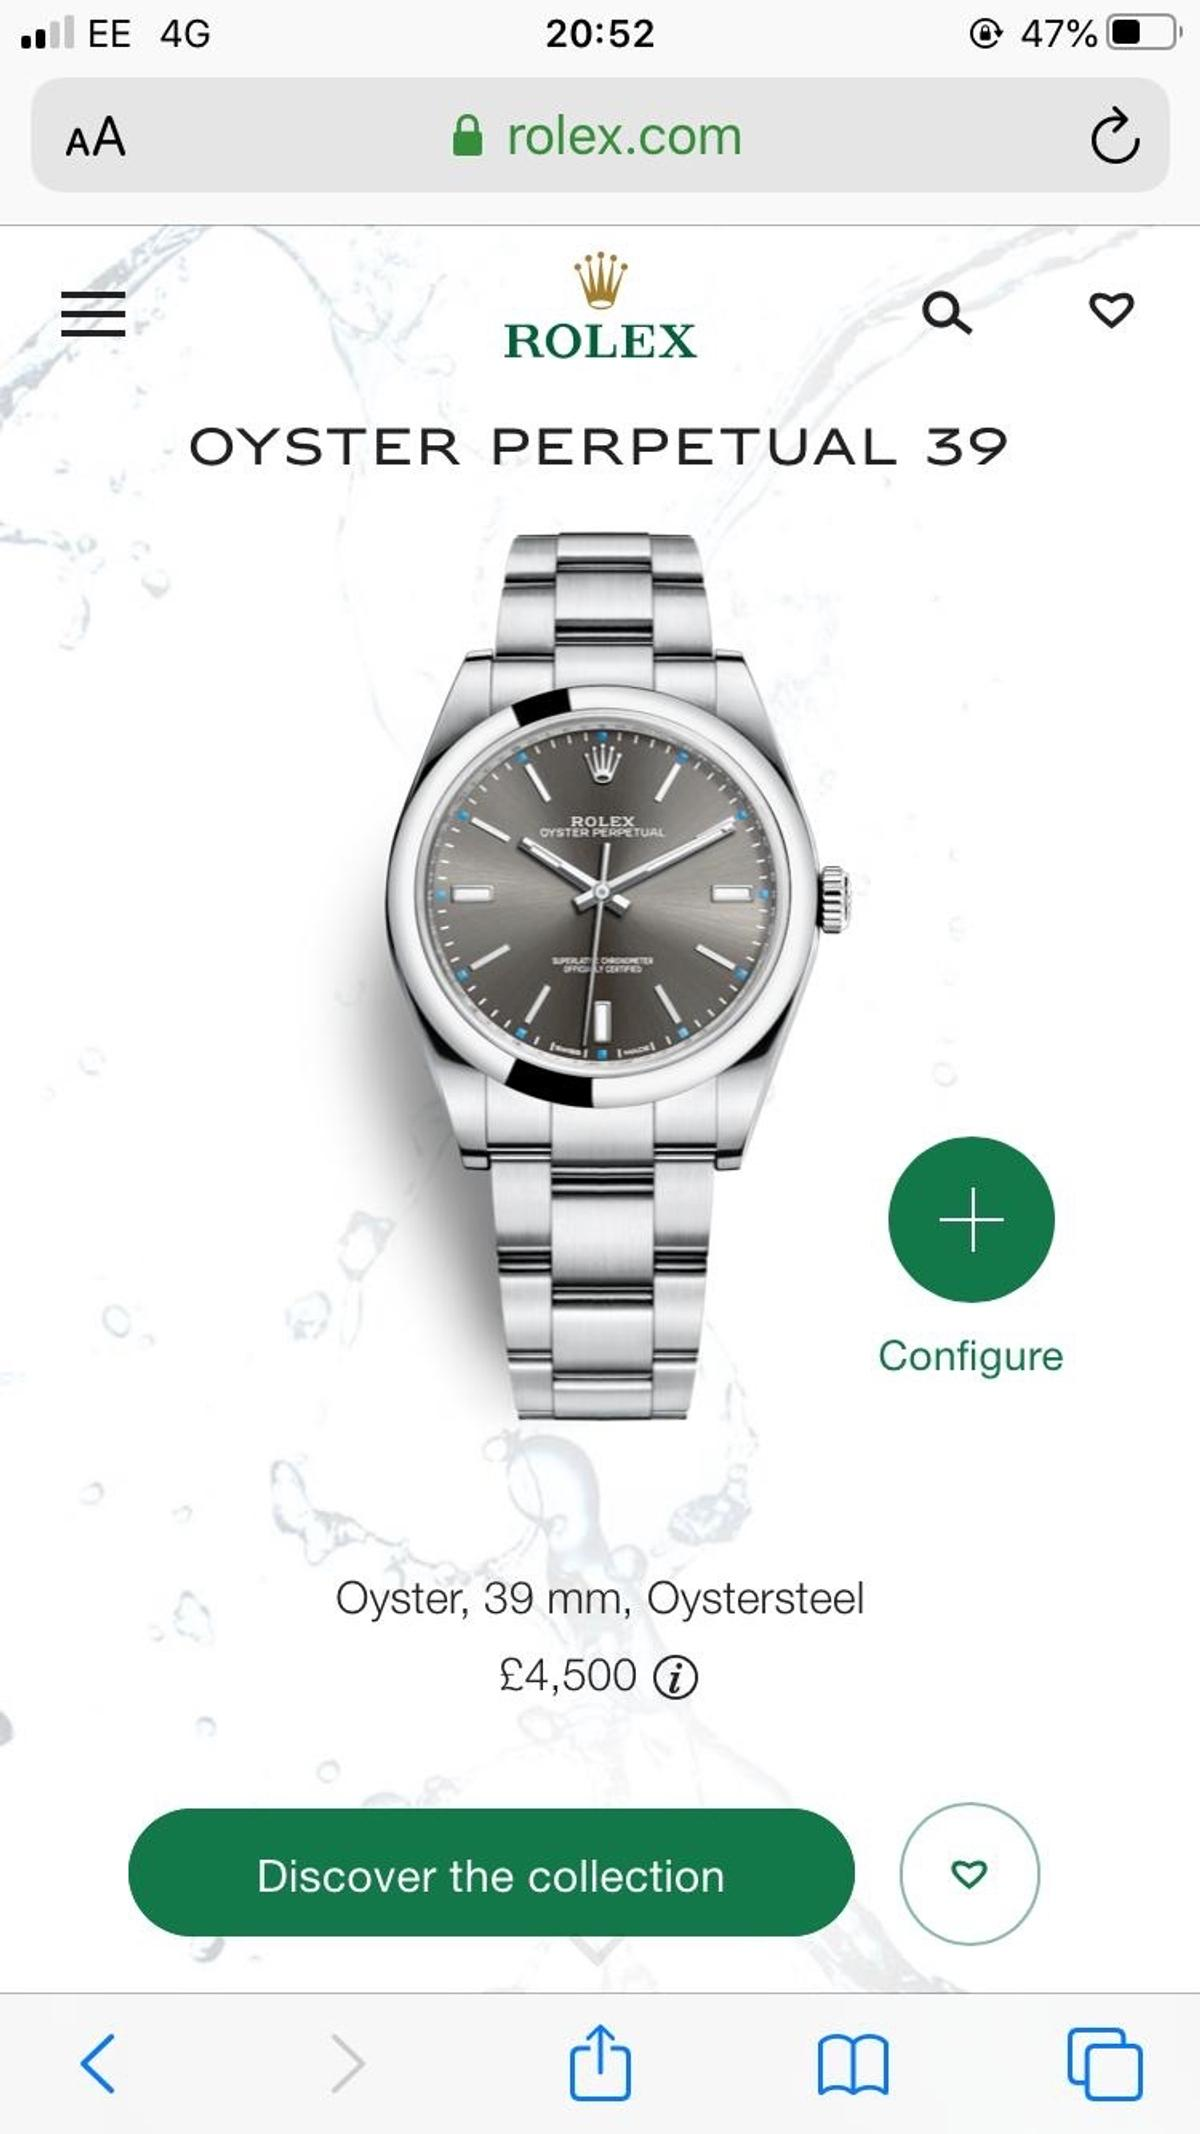 BRAND NEW 2020 WATCH  CANNOT BE BOUGHT FROM ROLEX AS THE WATCH IS A REGISTER ONLY ROLEX  £4700 ( SERIOUS BUYERS ONLY )